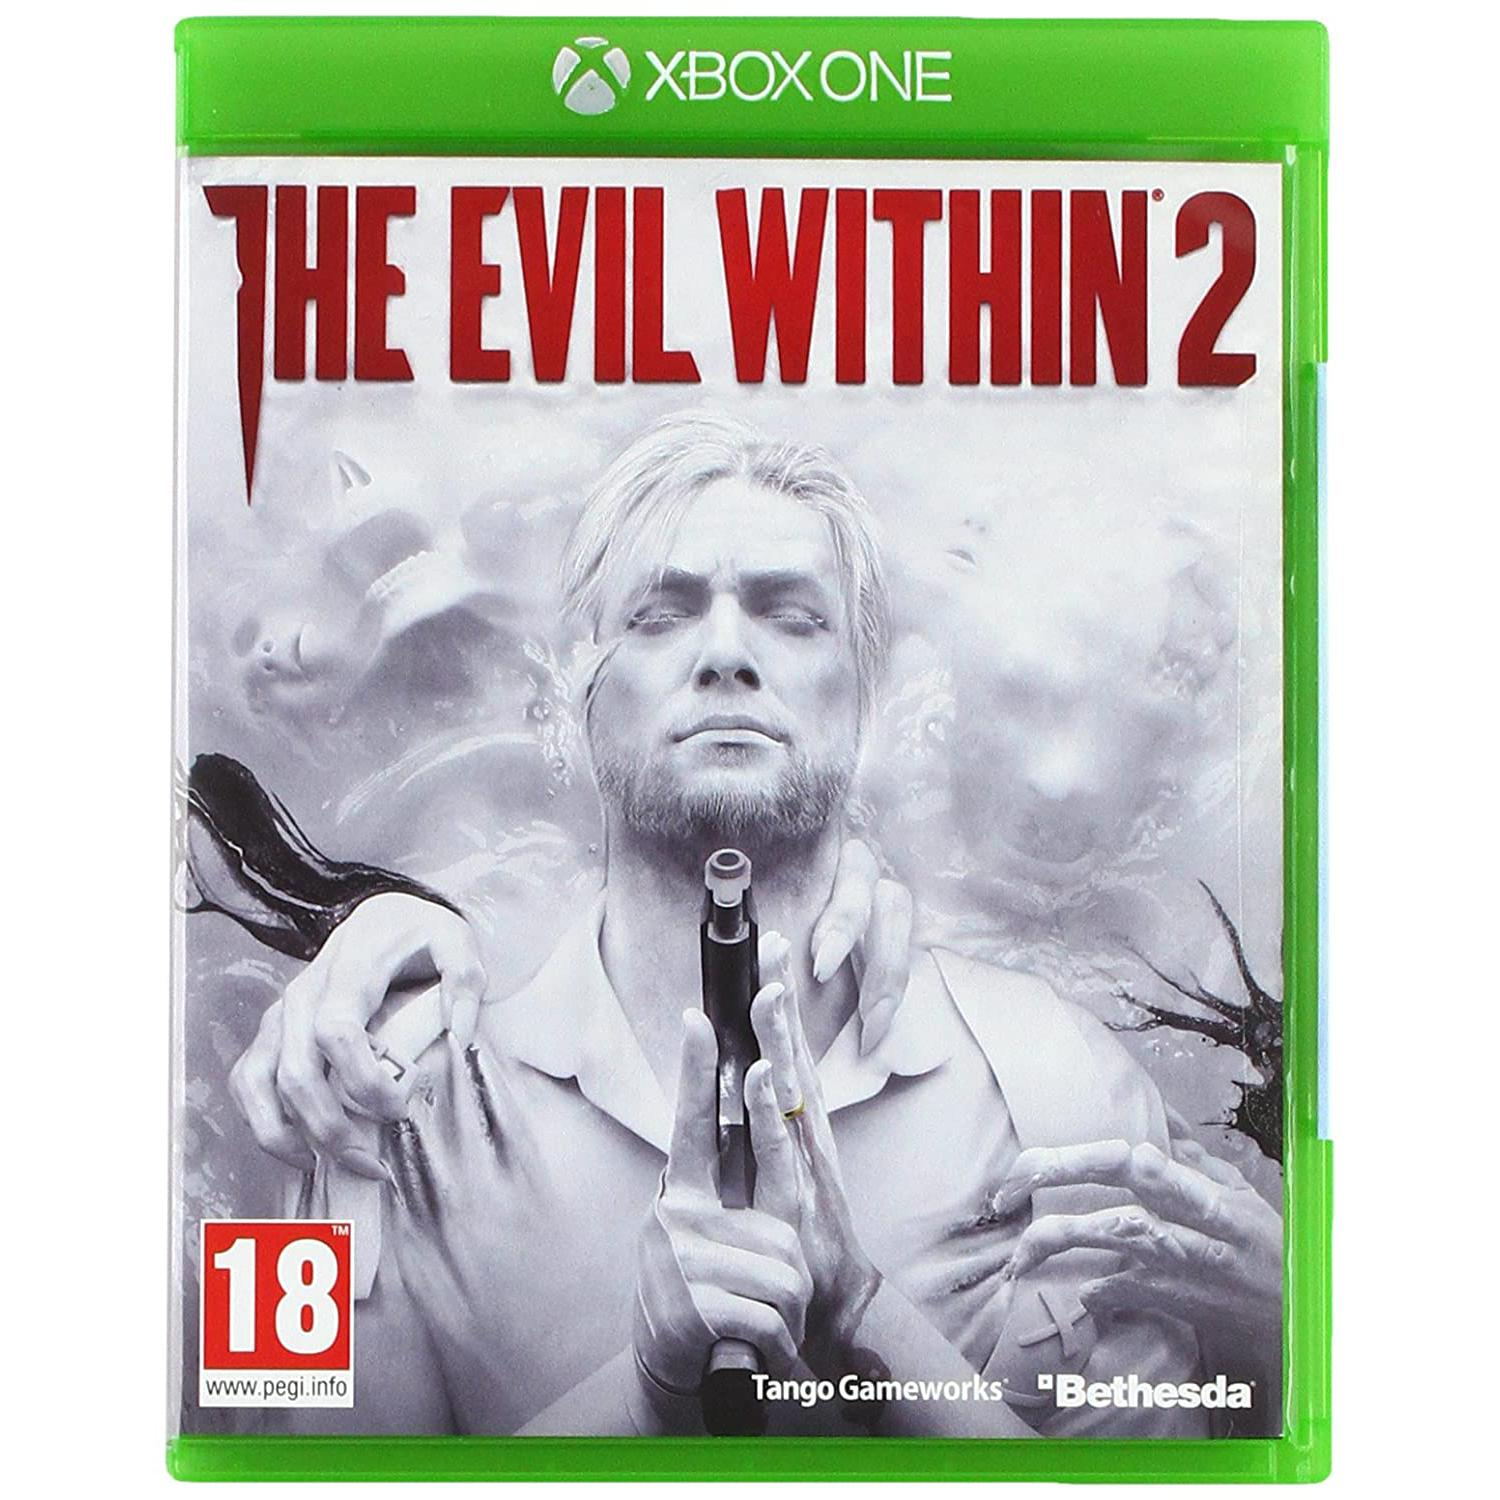 The Evil Within 2 Steelbook Edition - Xbox One